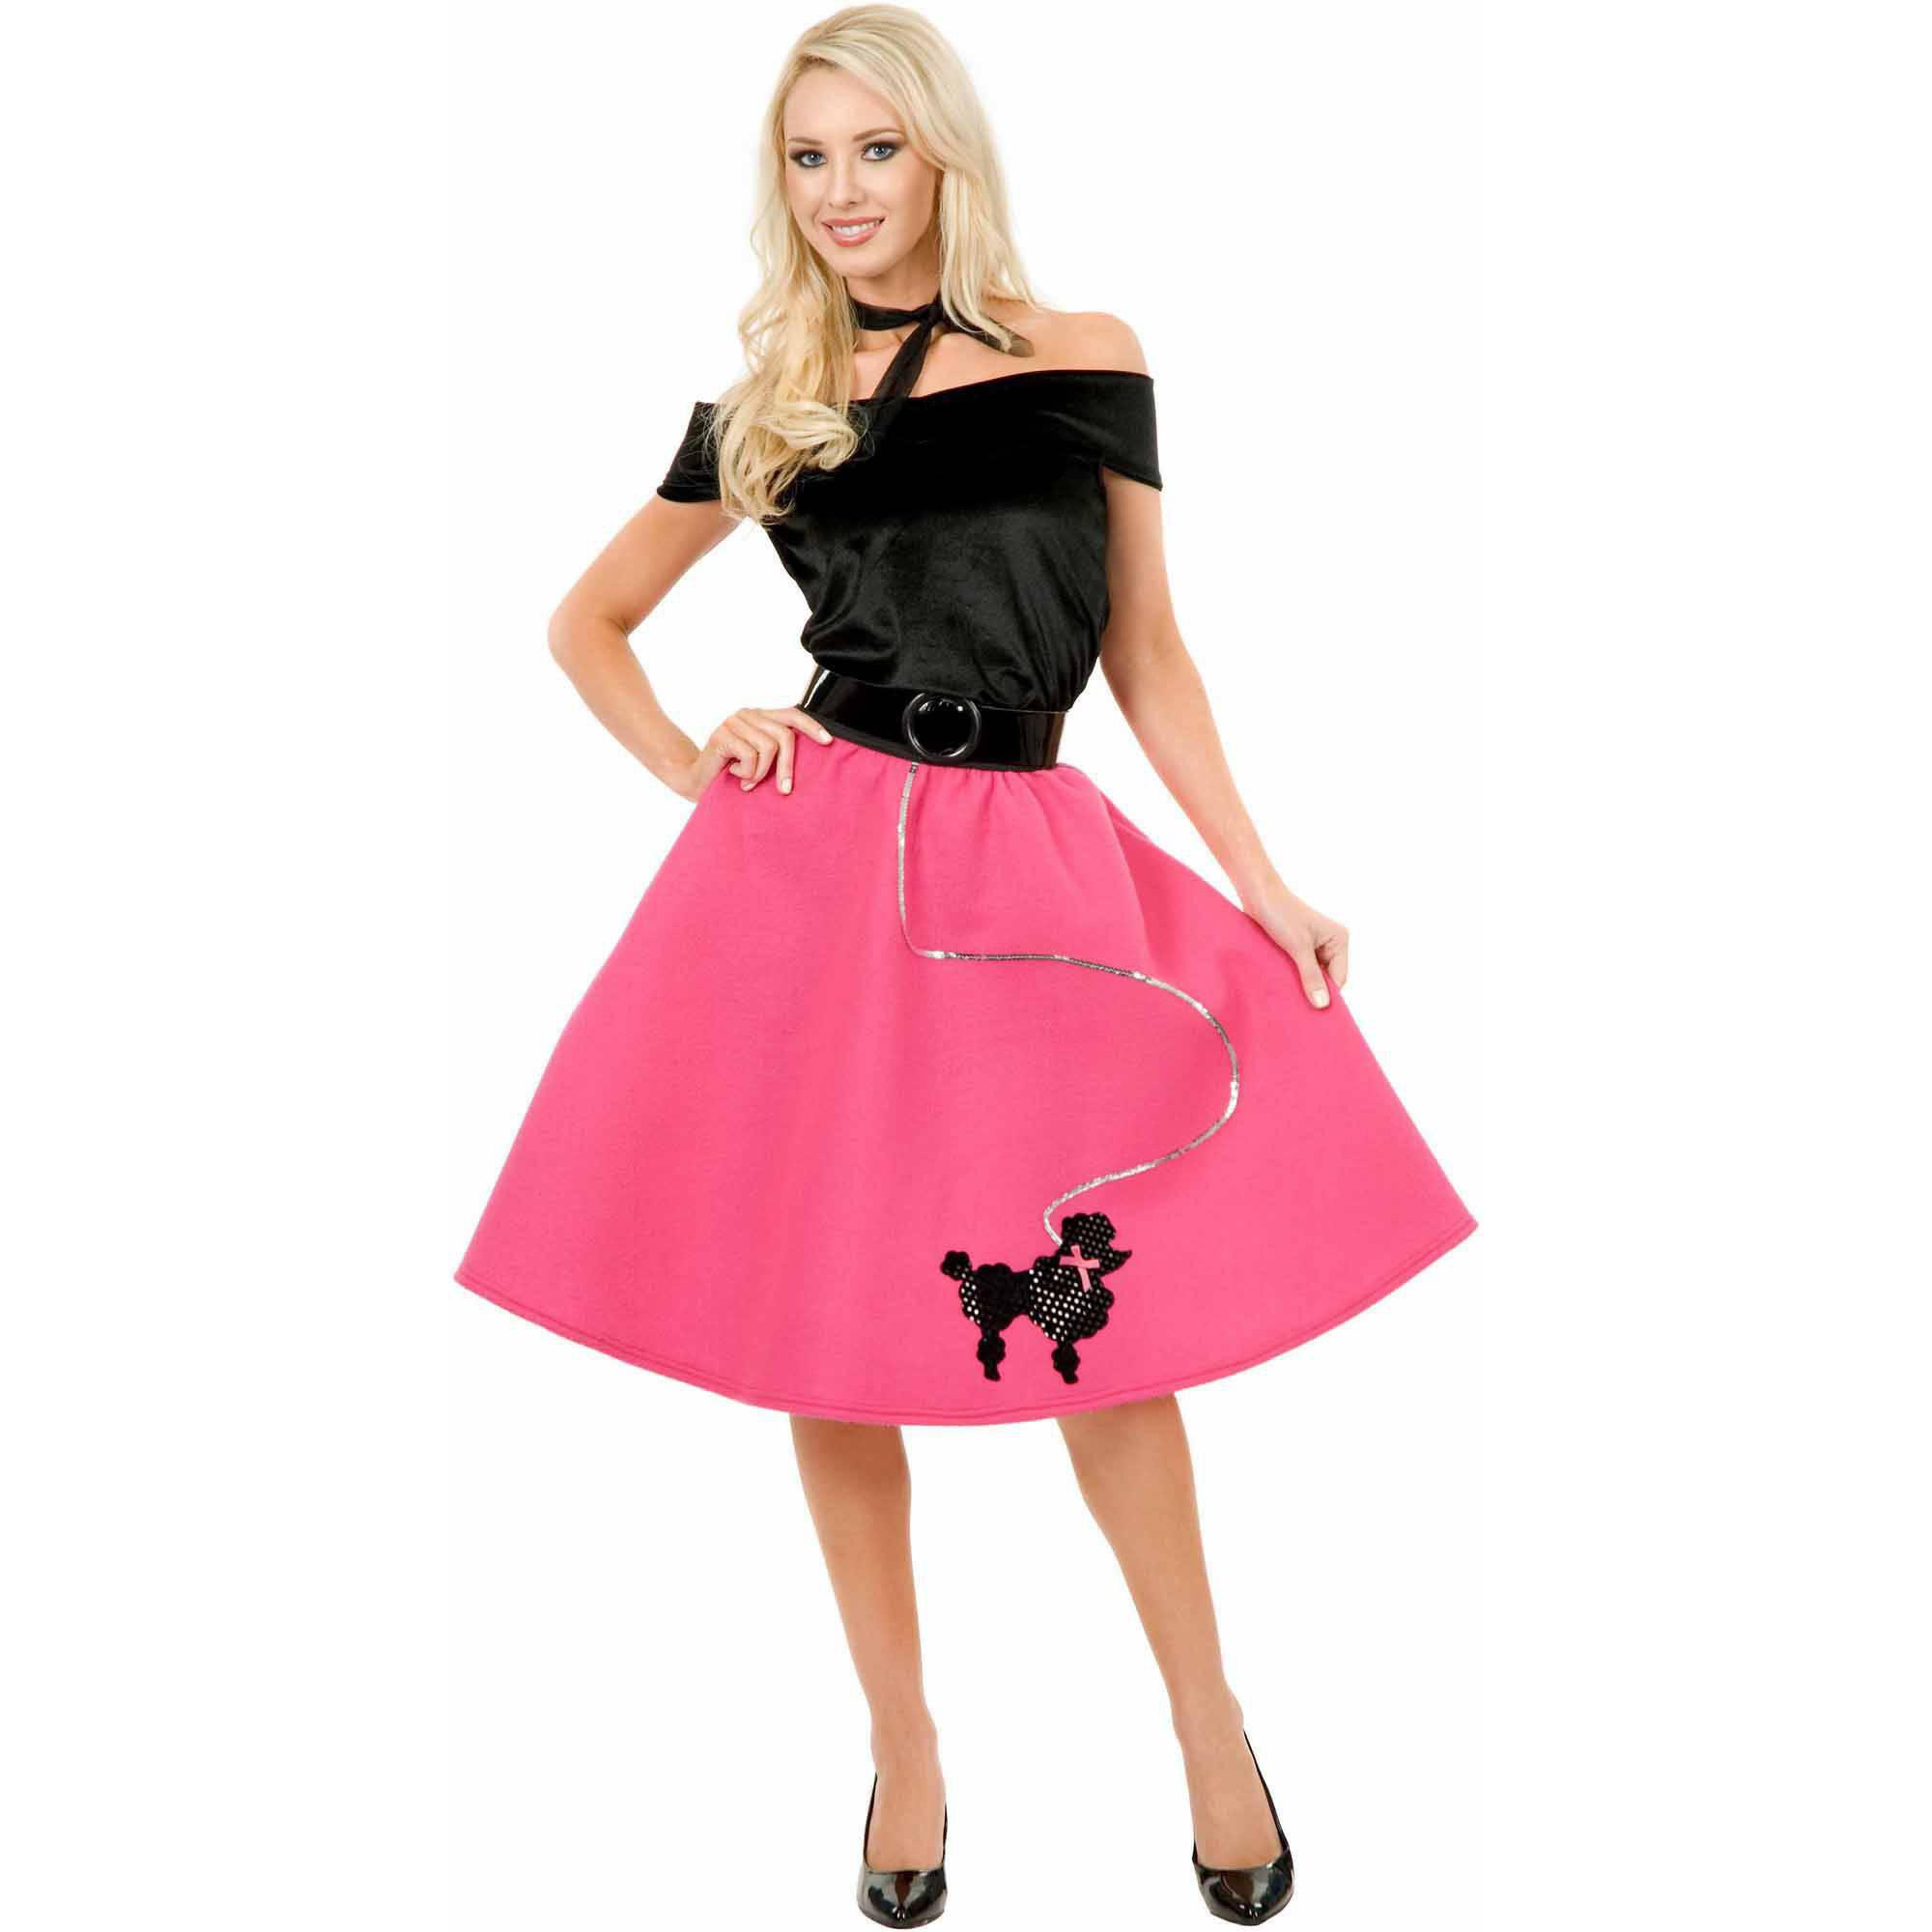 Poodle Skirt Top And Scarf Plus Size Womens Adult Halloween Costume